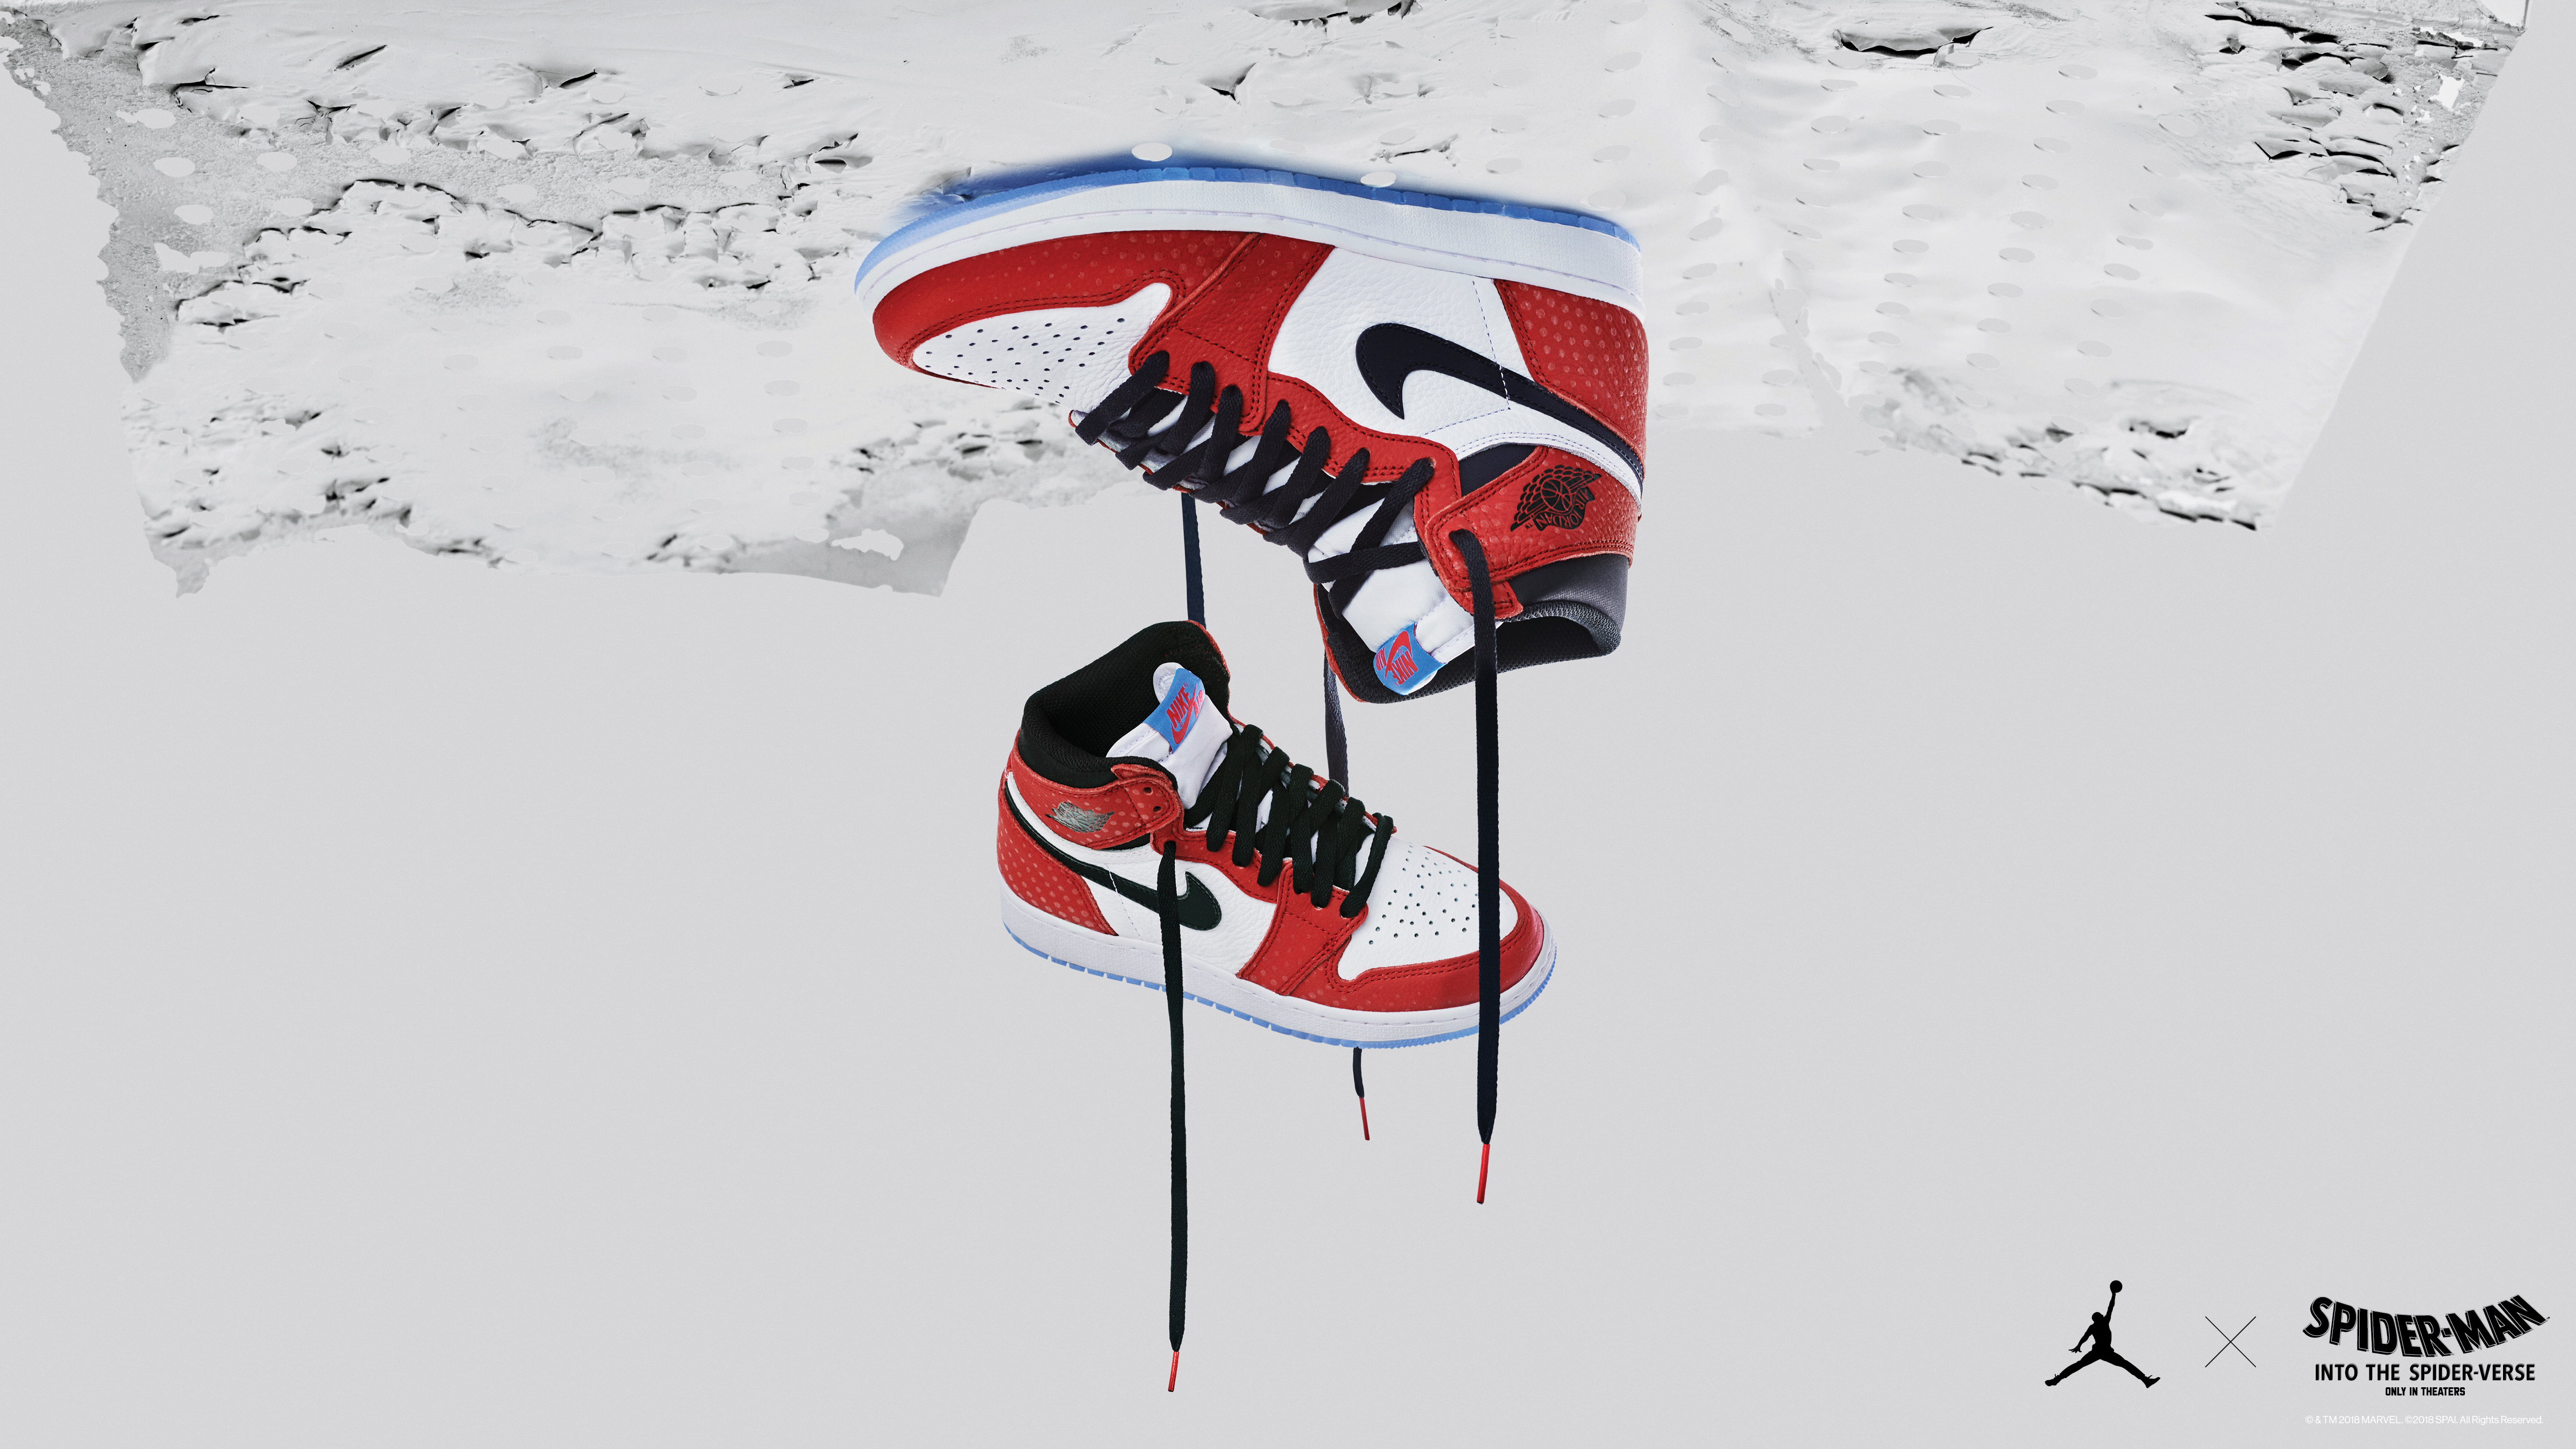 How Air Jordan 1s got to star in \u201cSpider,Man Into the